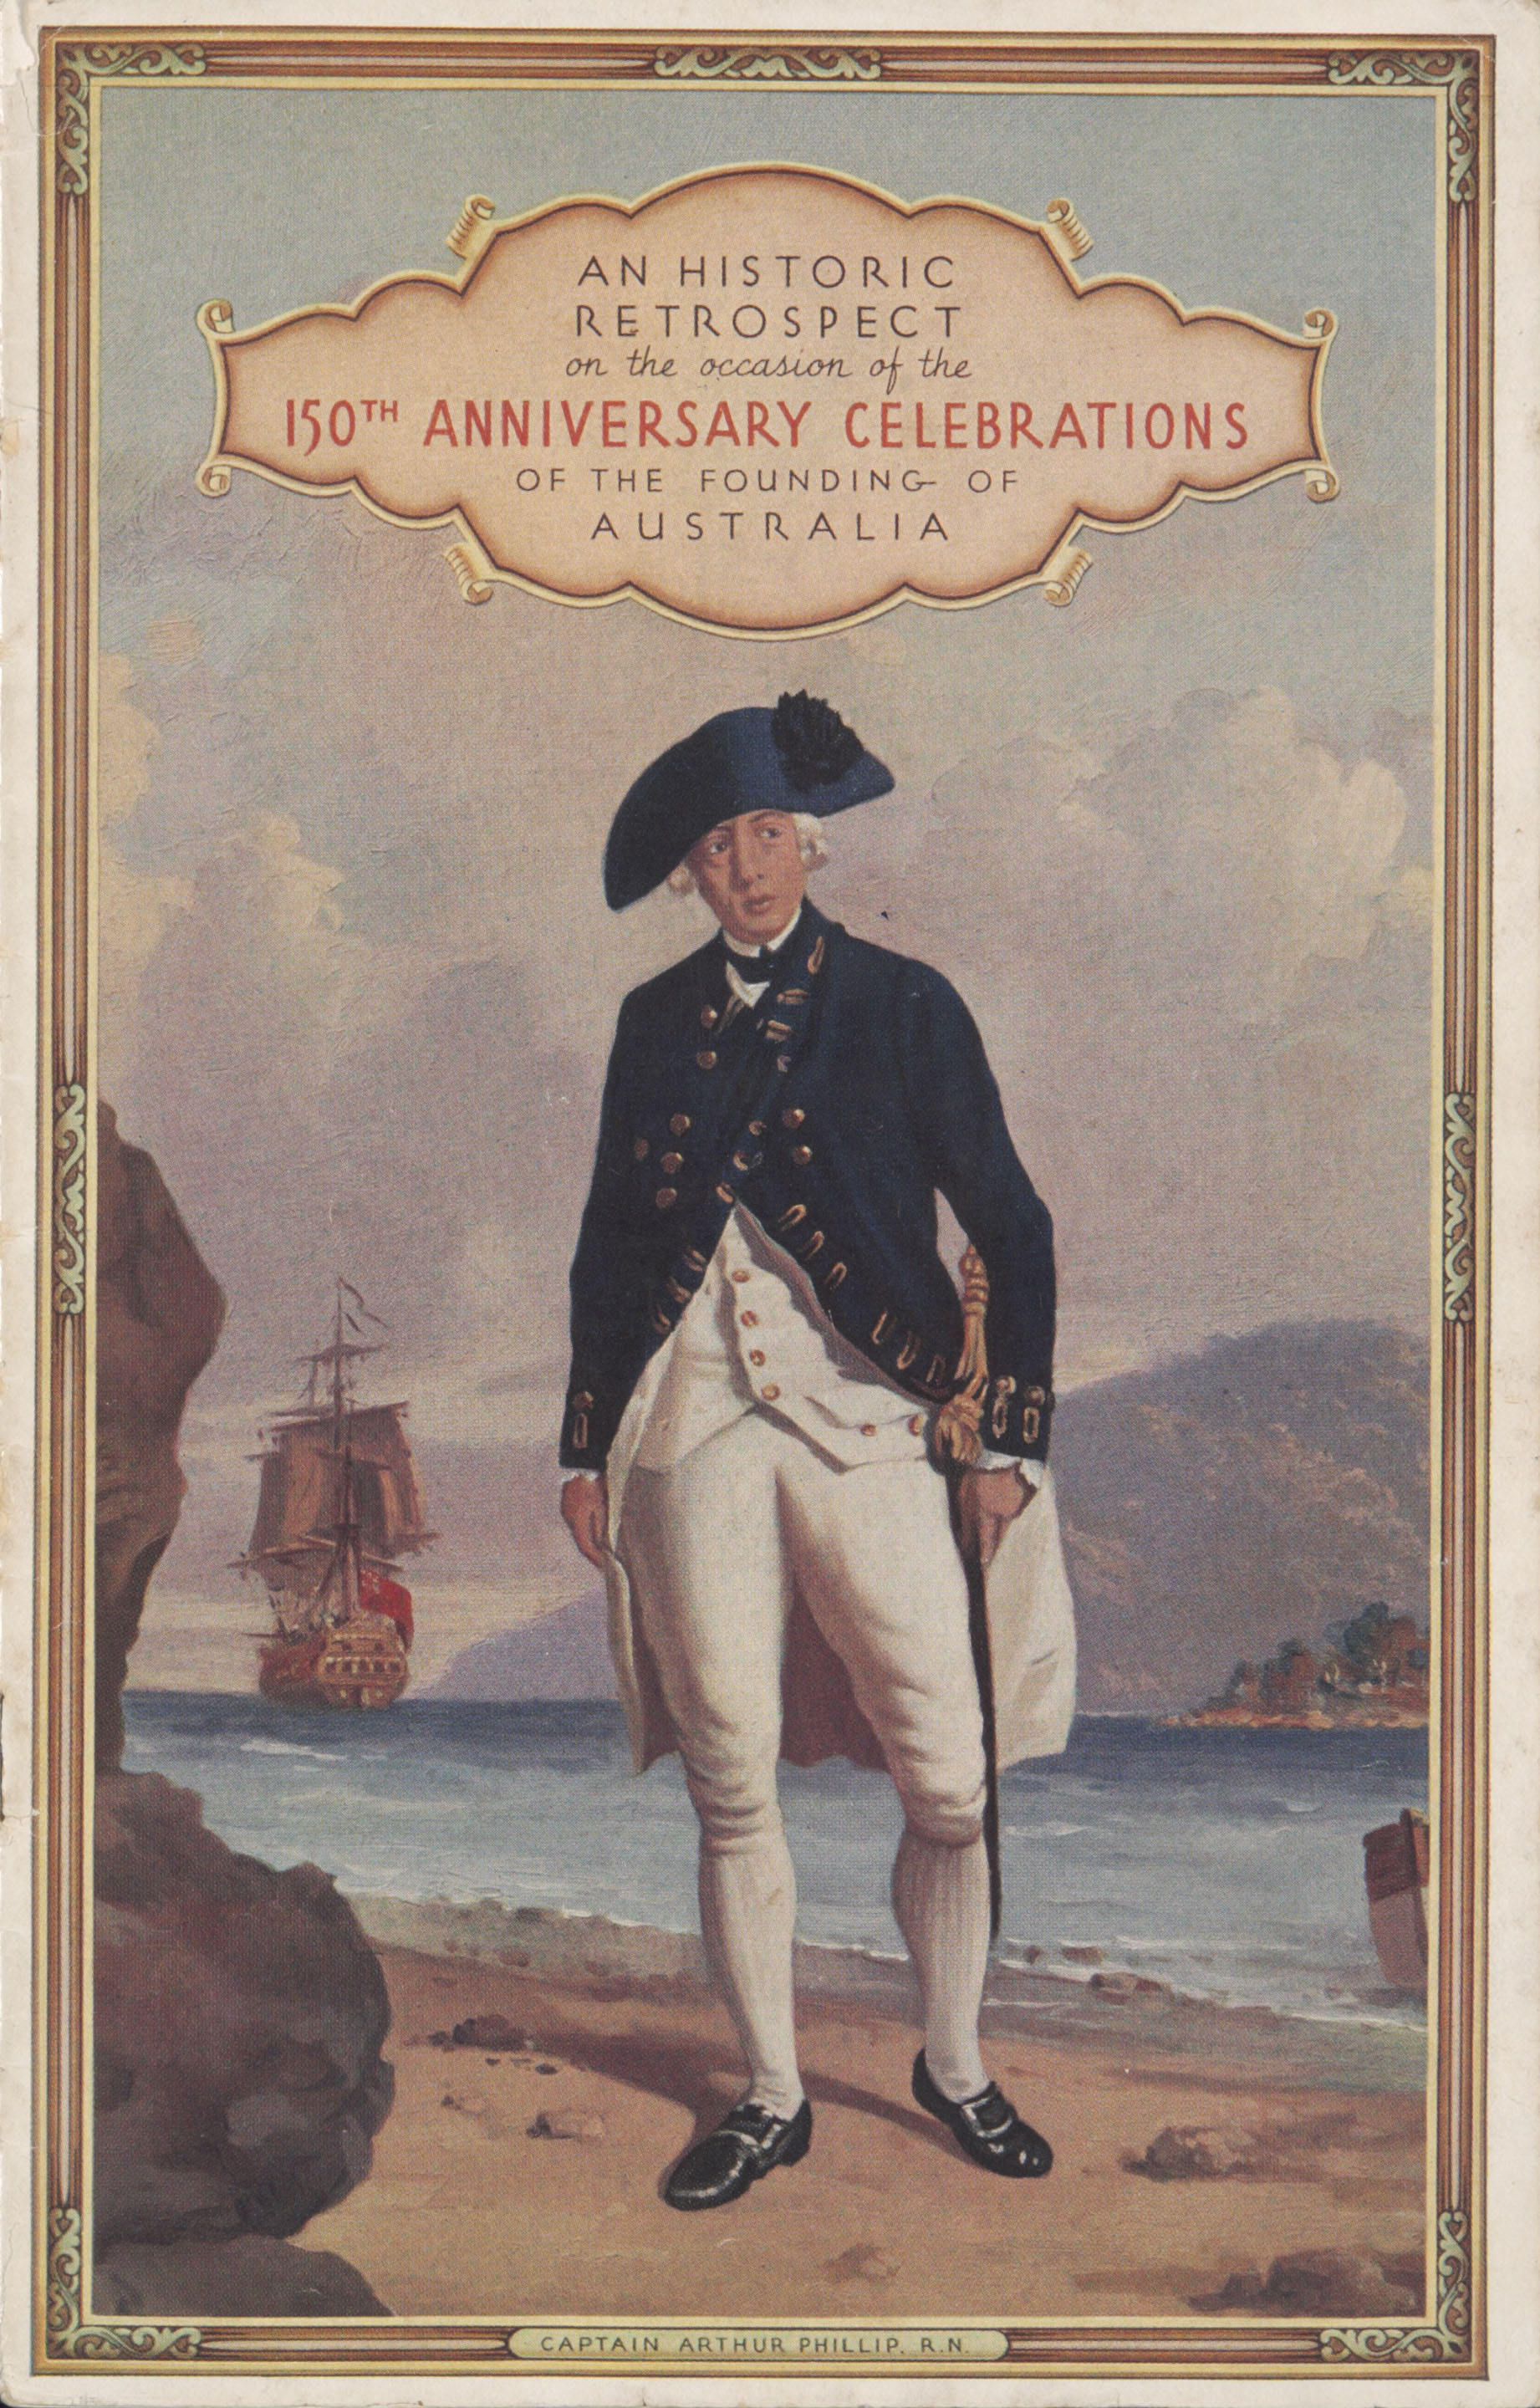 Colour publication printed for the 150th Anniversary Celebrations of Australia, 1938. Captain Arthur Phillip is featured.